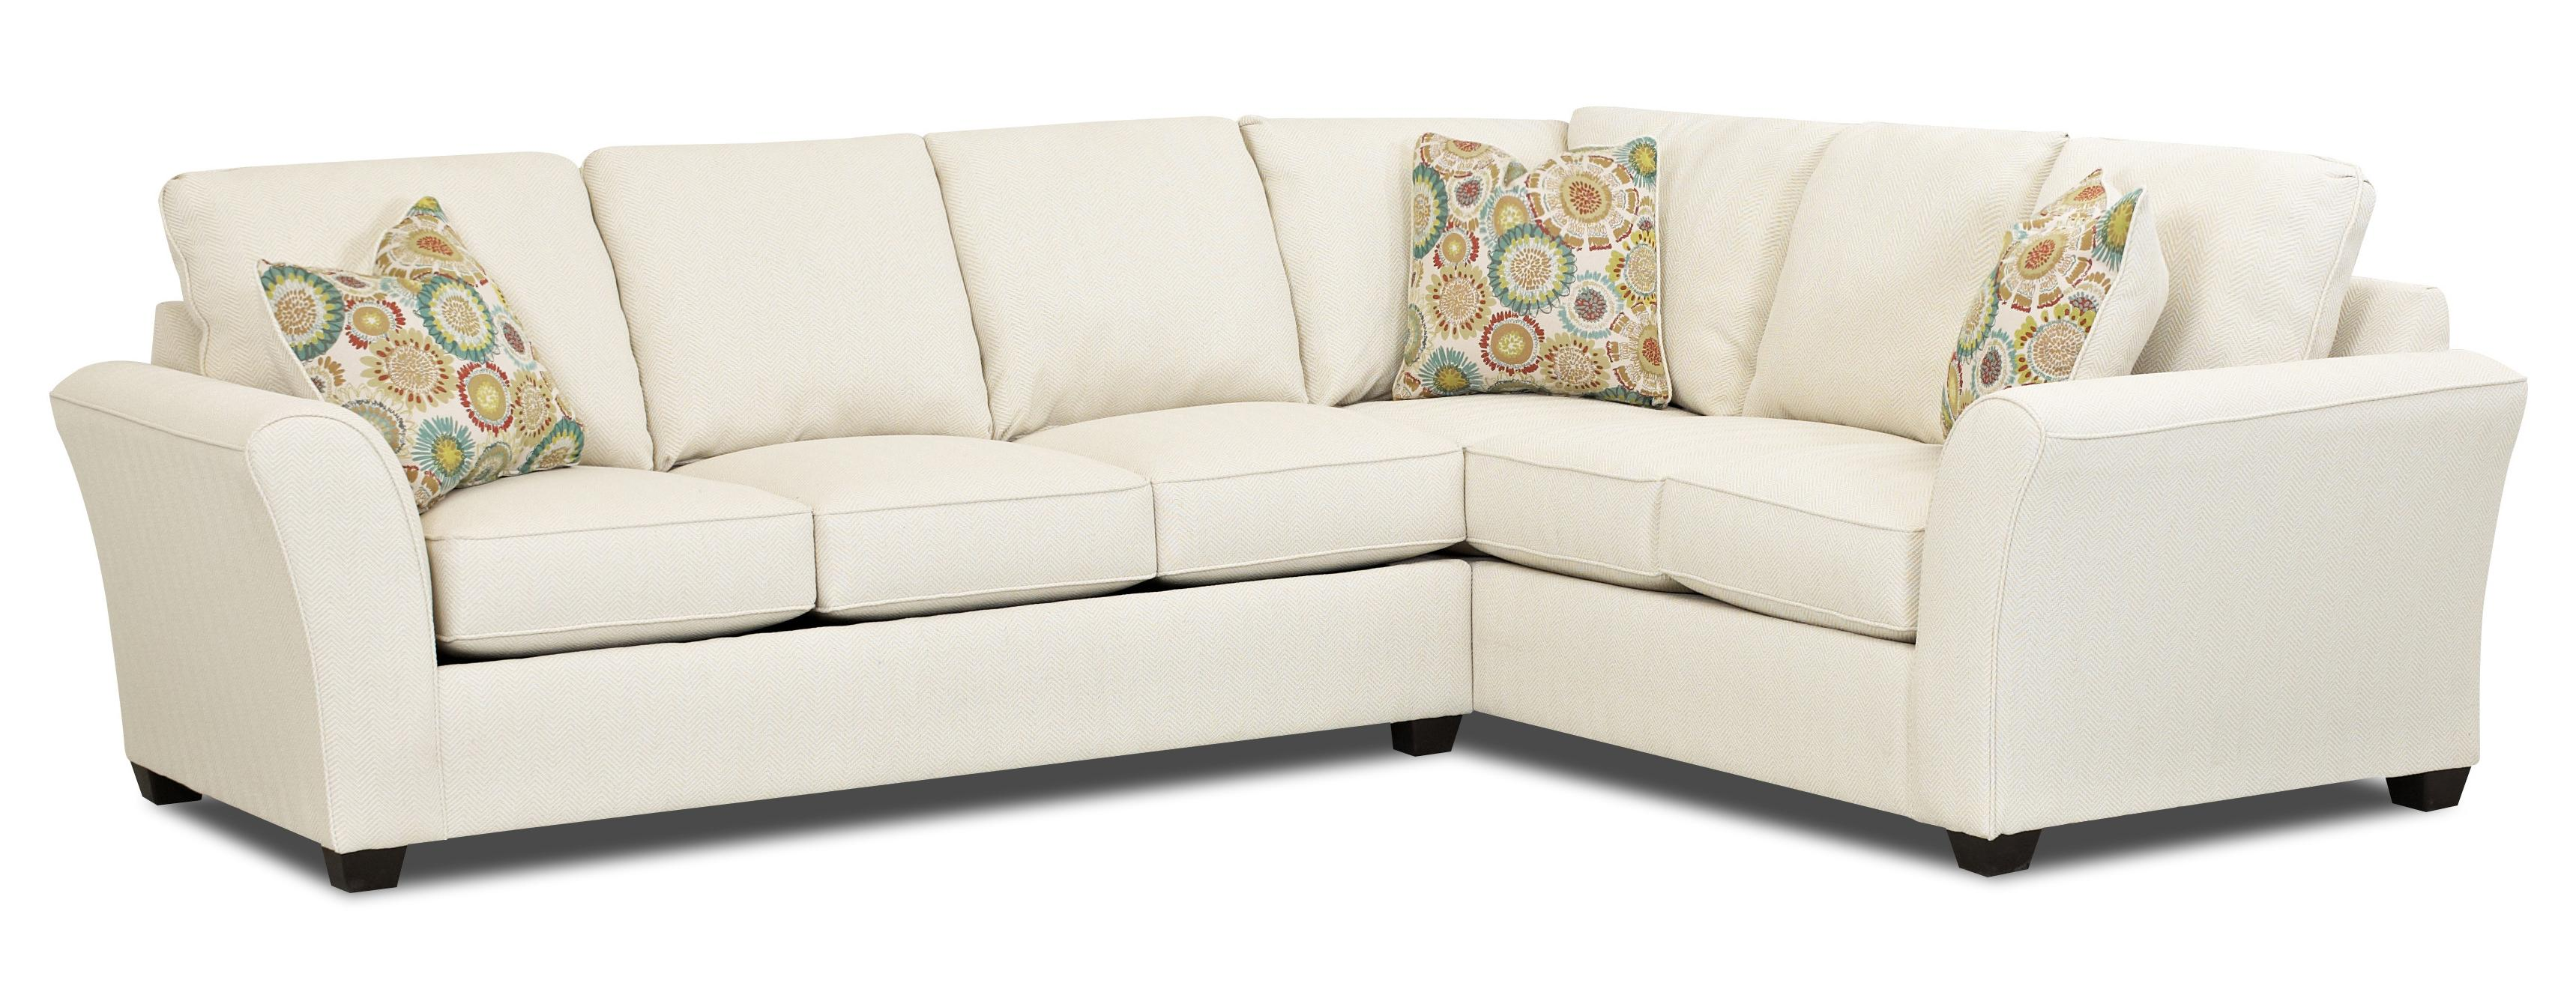 Sectional Pull Out Couch Klaussner Sedgewick Transitional 2 Piece Sectional Sofa Fmg